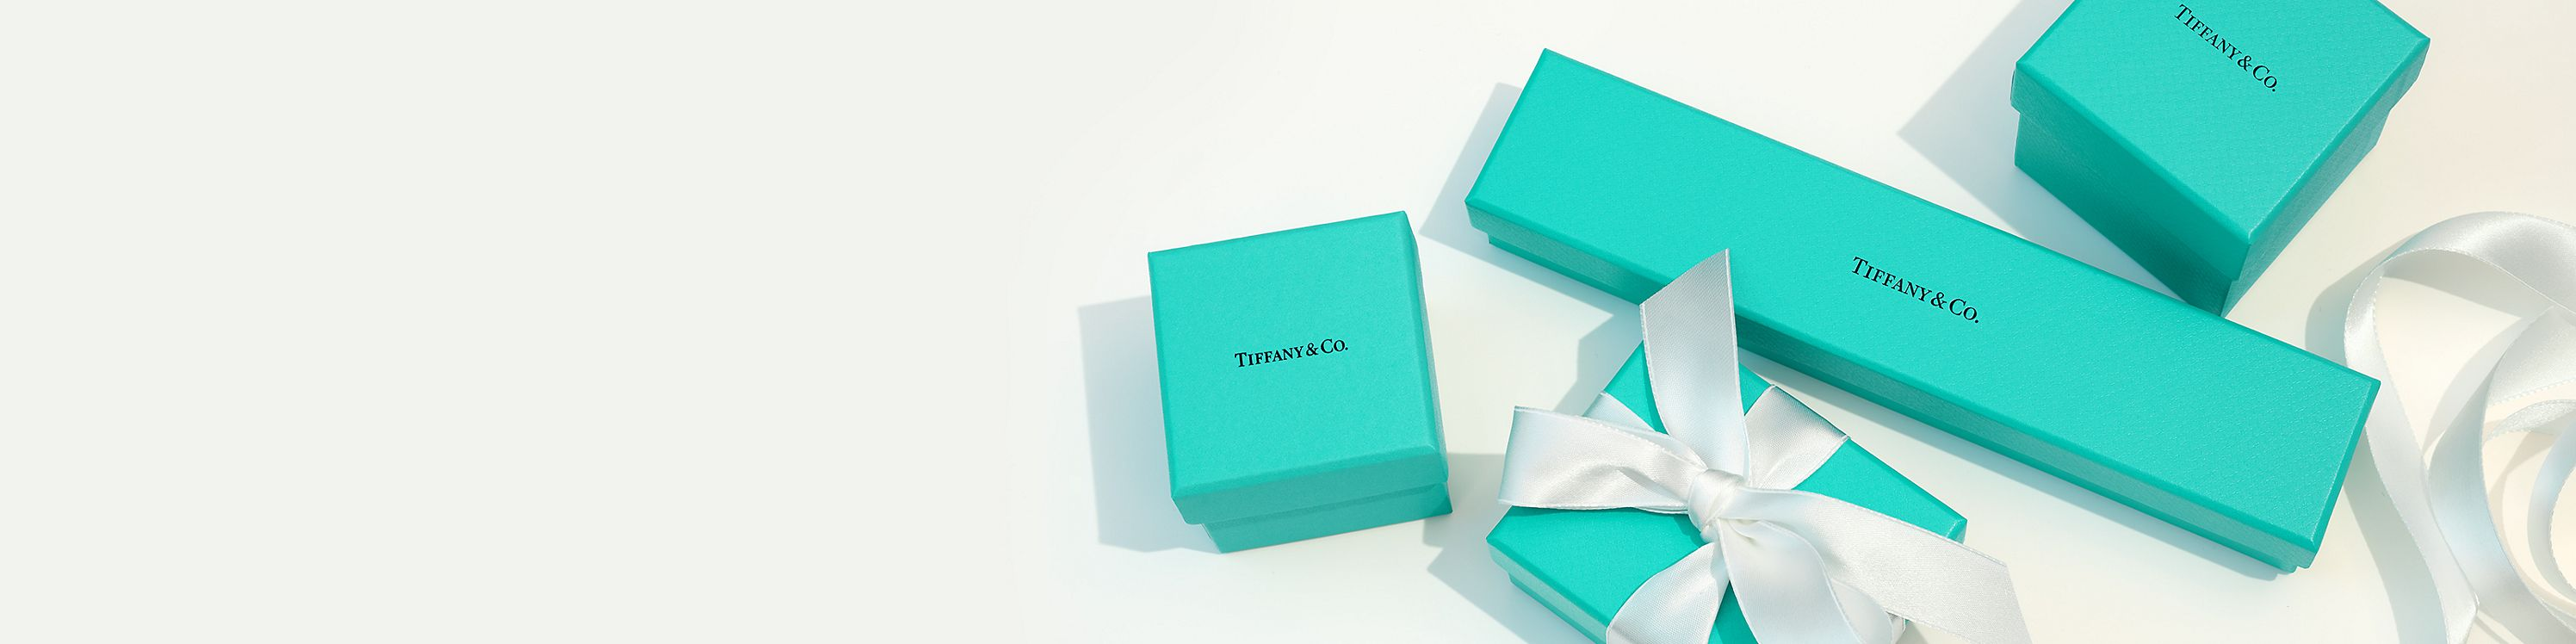 Tiffany & Co. Gifts Under $250